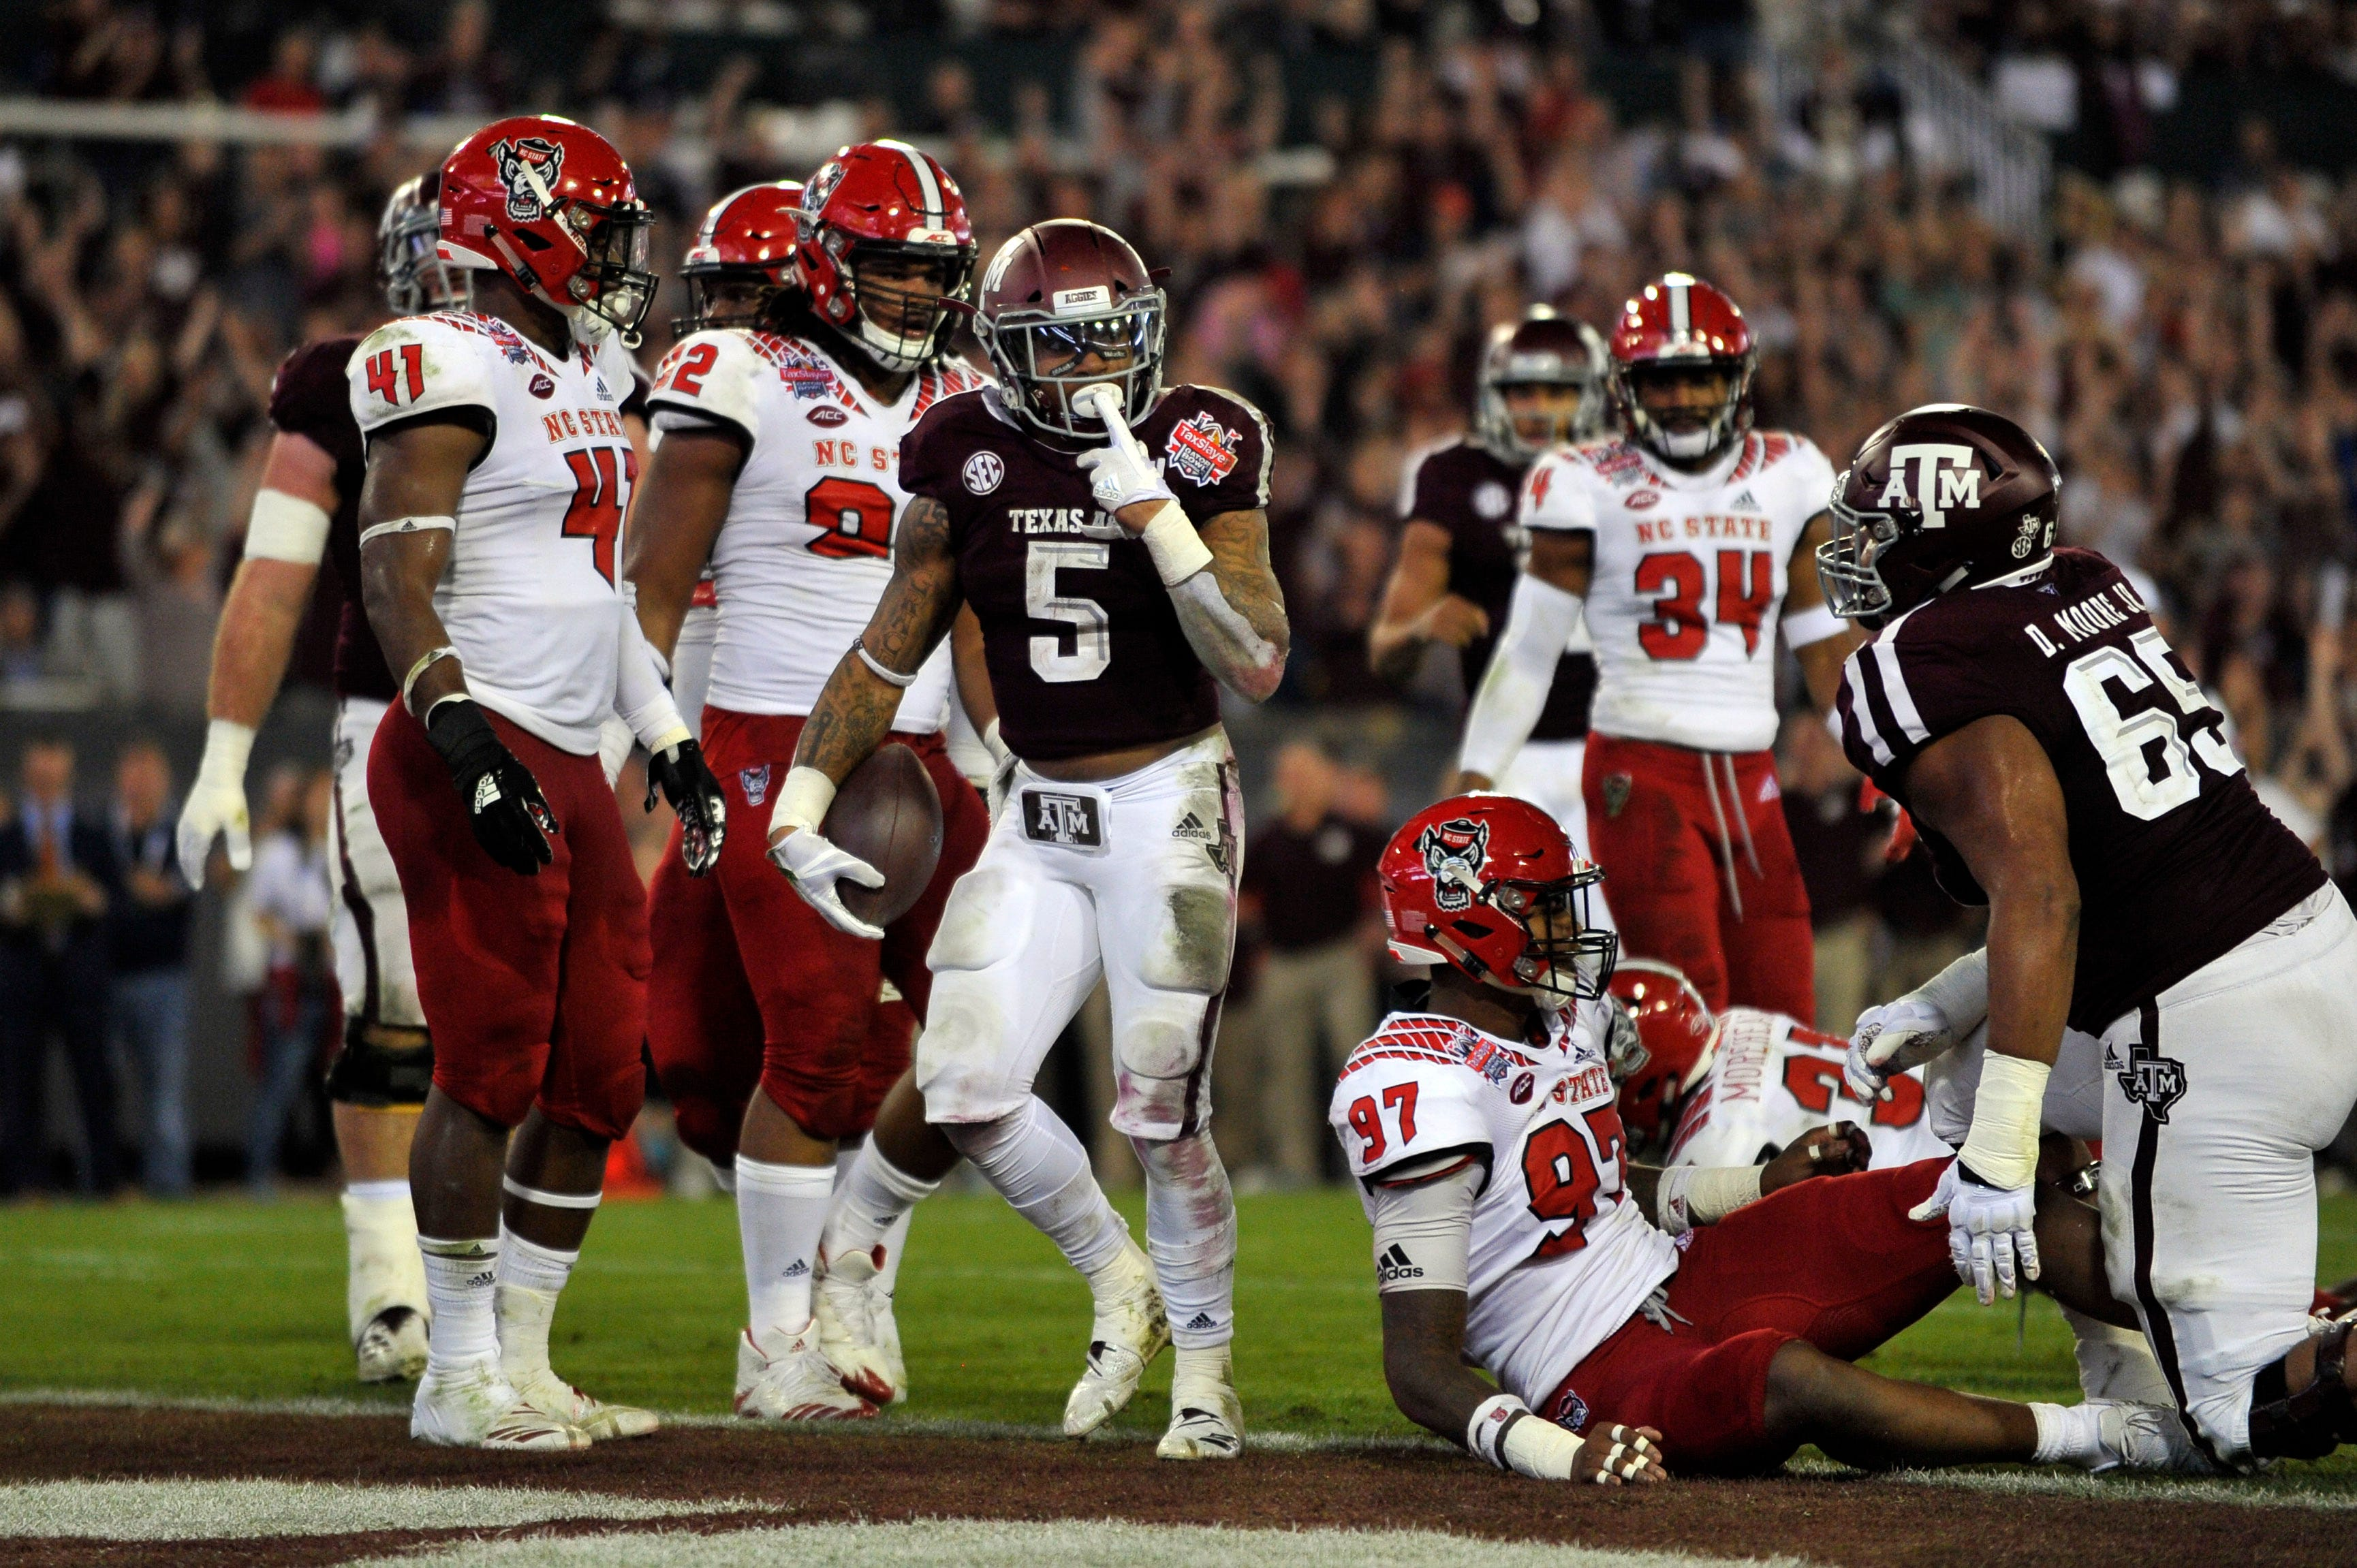 Trayveon Williams' record-setting night powers Texas A&M to Gator Bowl win